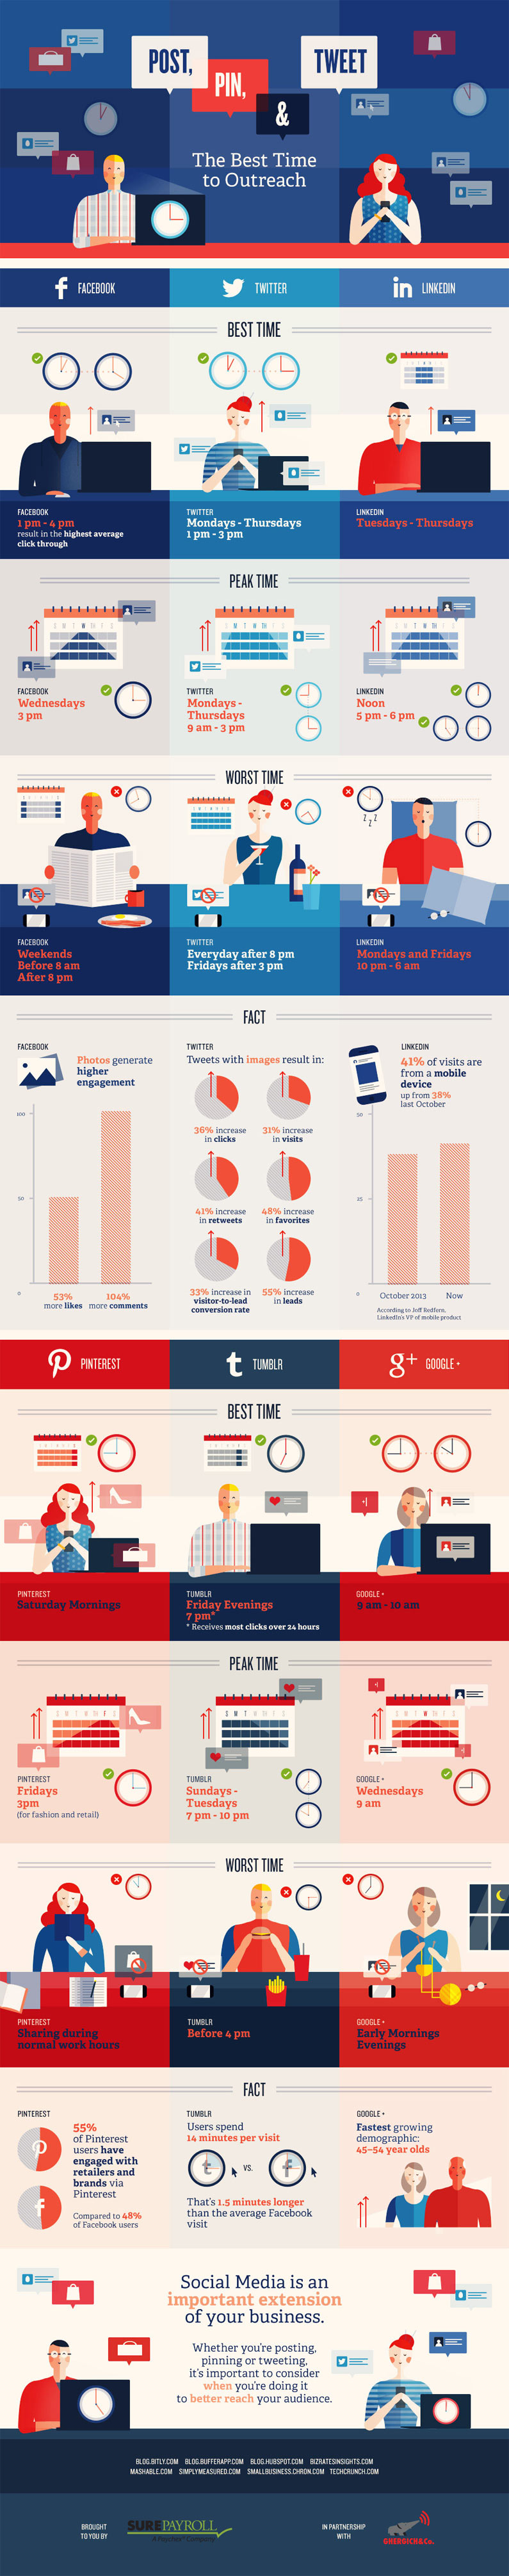 best-time-to-post-and-tweet-blog-articles-social-media-infographic